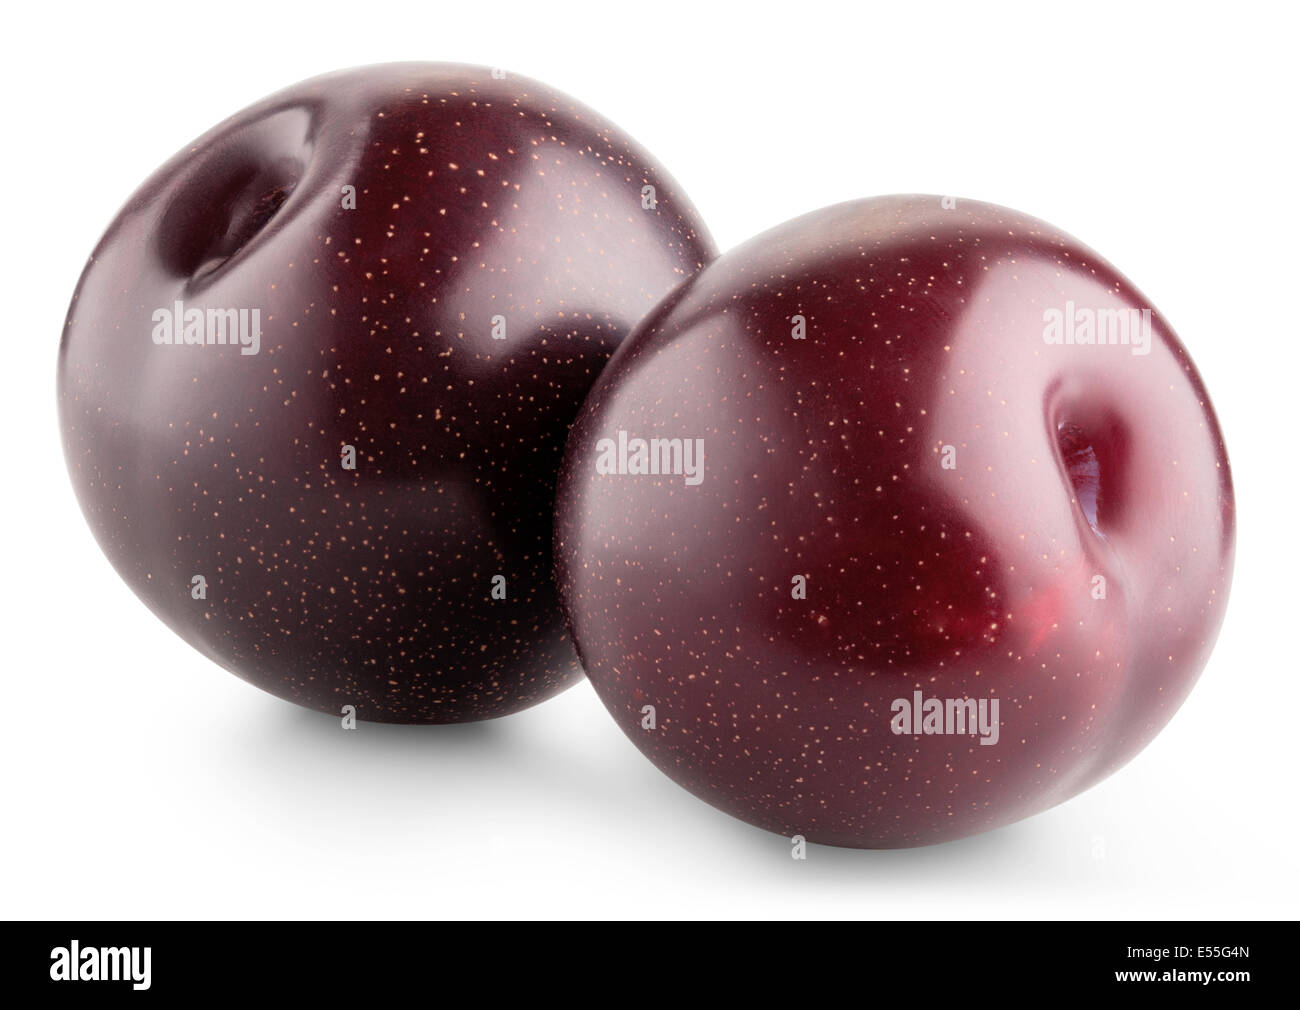 Ripe plum fruit isolated on white background. Clipping Path - Stock Image